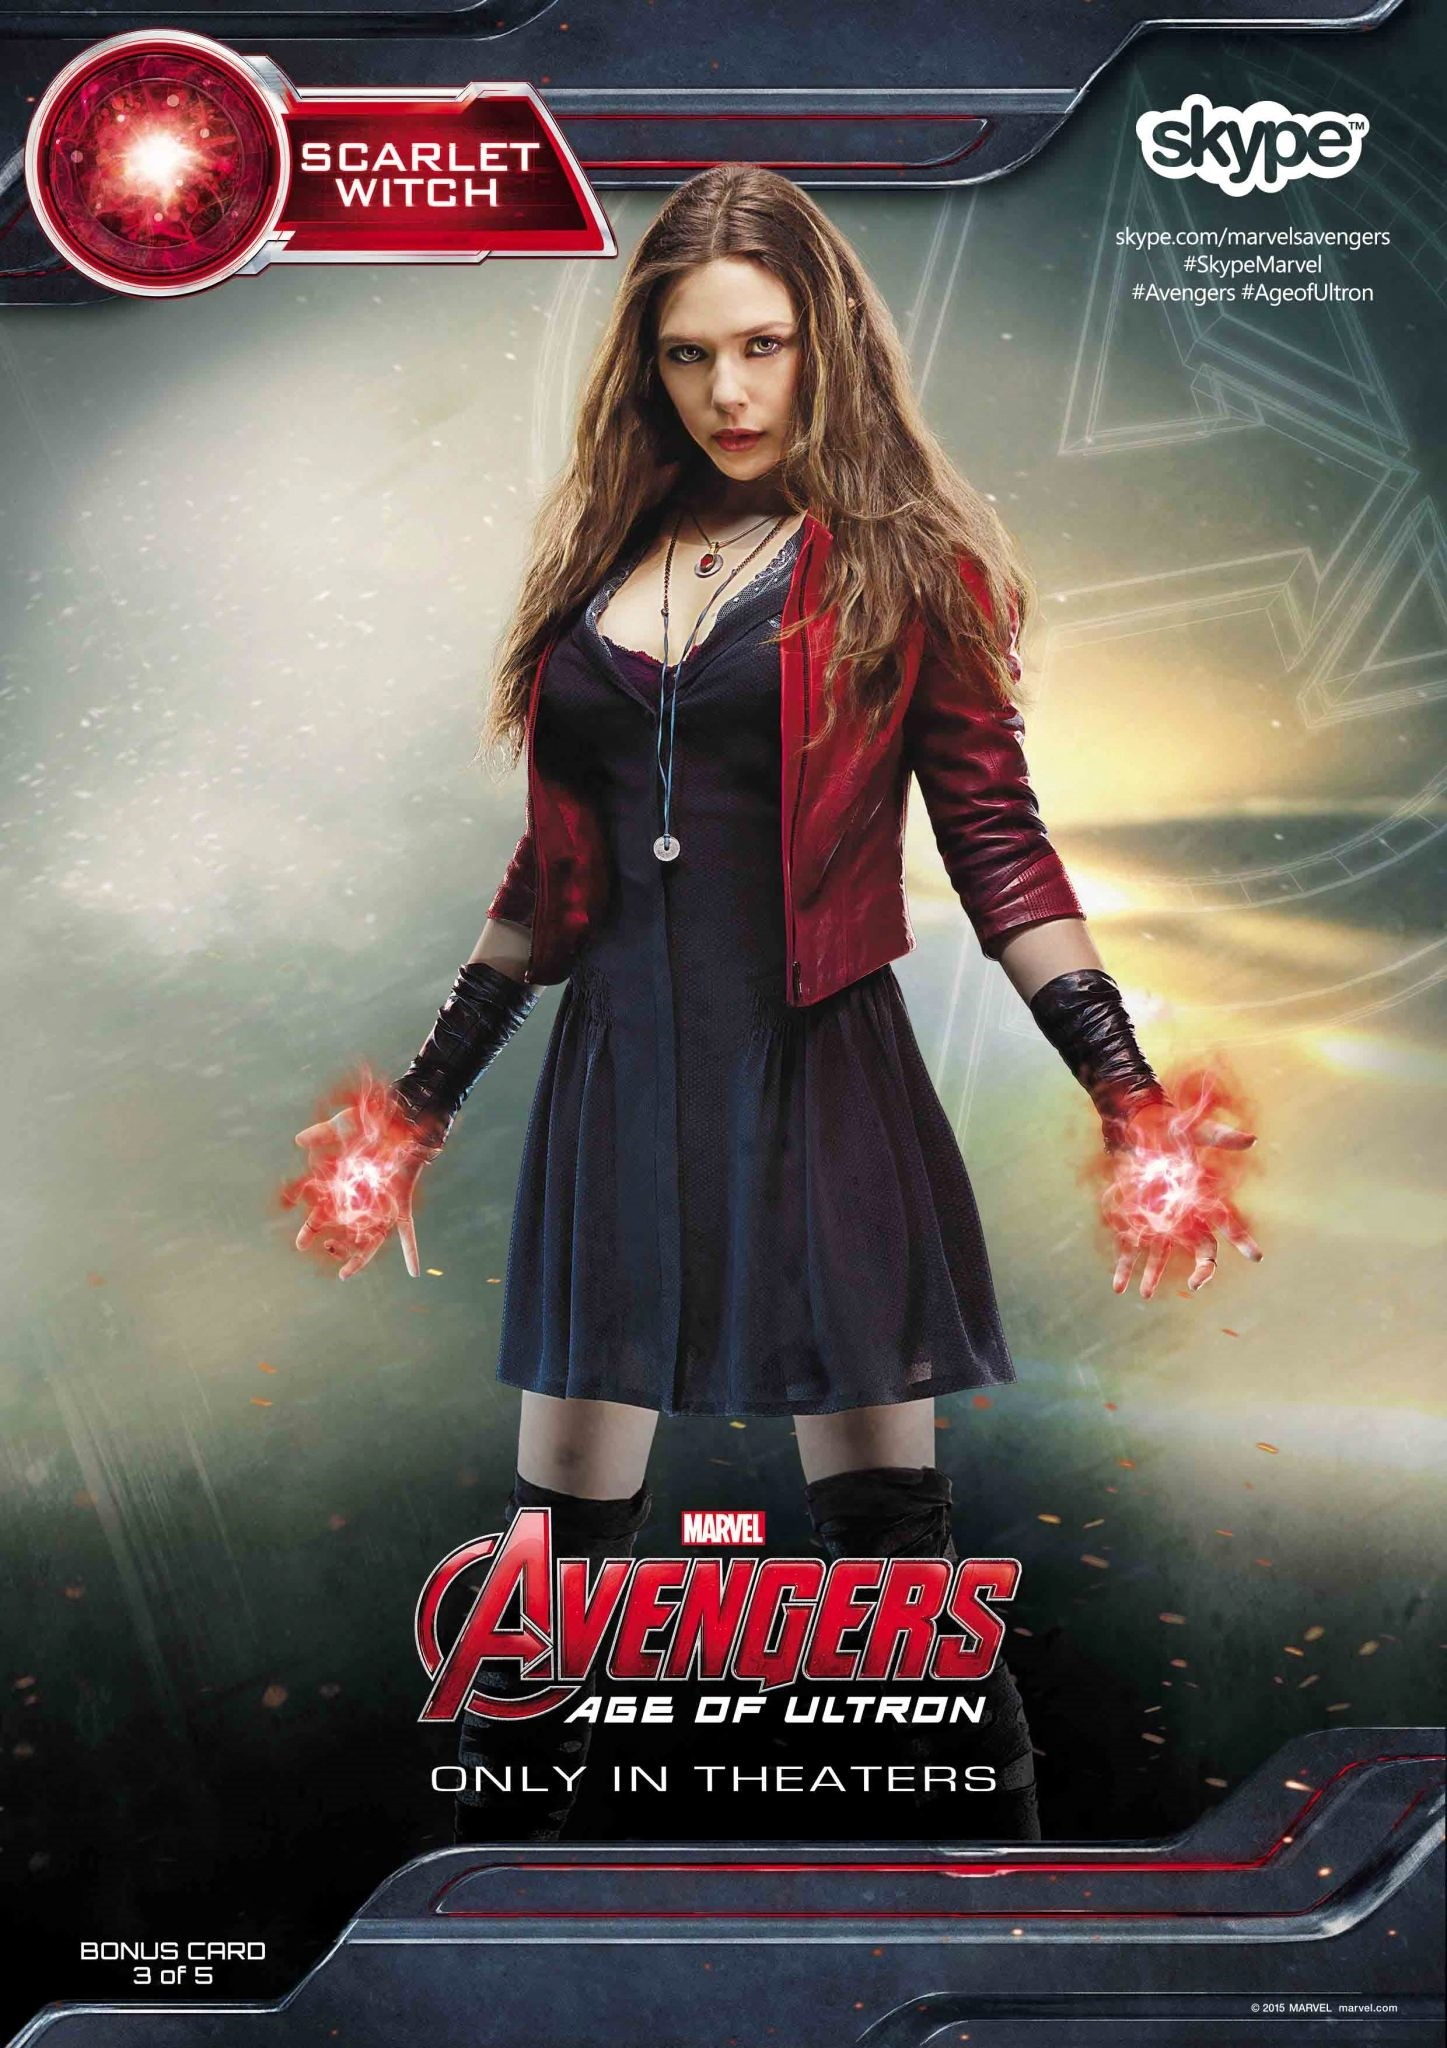 Wanda & Pietro images Scarlet Witch HD wallpaper and background photos